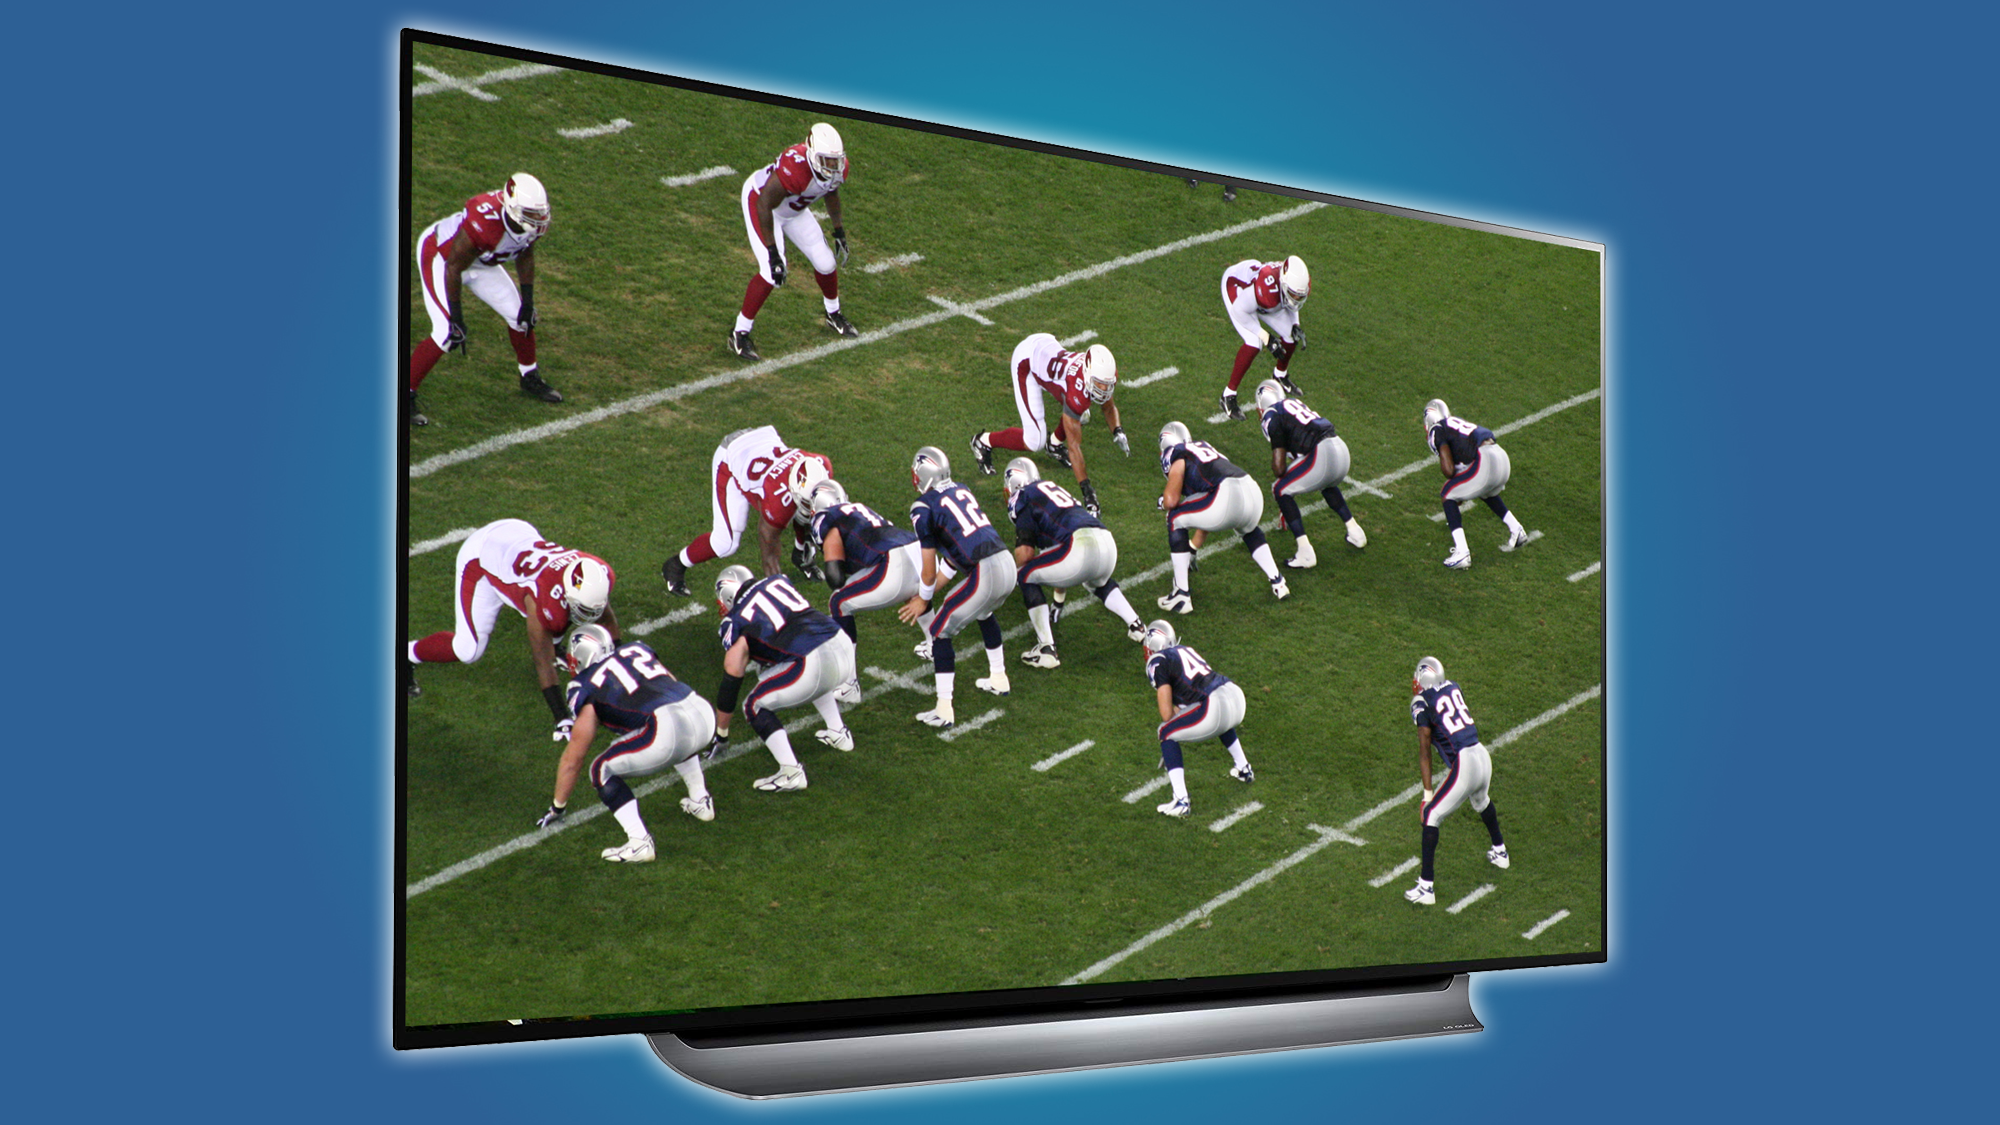 Large screen television displaying a football game in progress